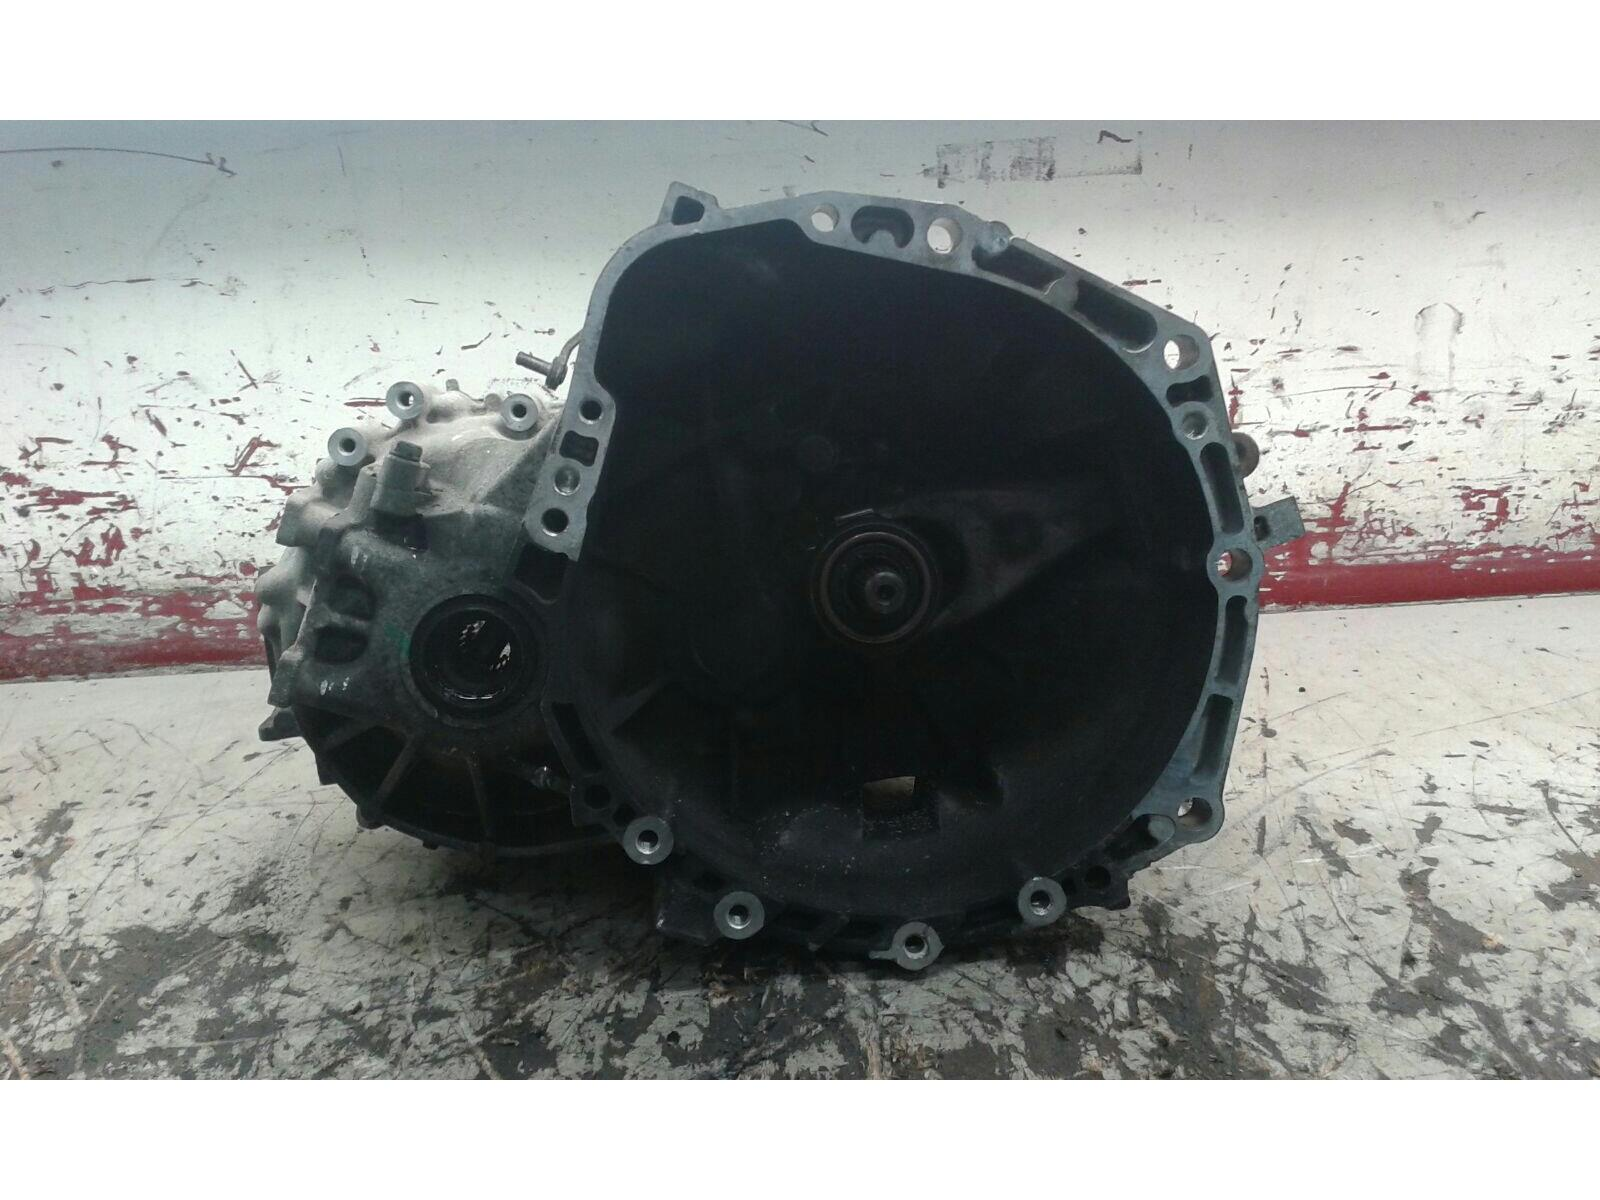 Toyota Yaris 2003 To 2005 Transmission Assembly Petrol Manual Alternator Wiring Diagram Gearbox 13 5 Speed Warranty 1306450